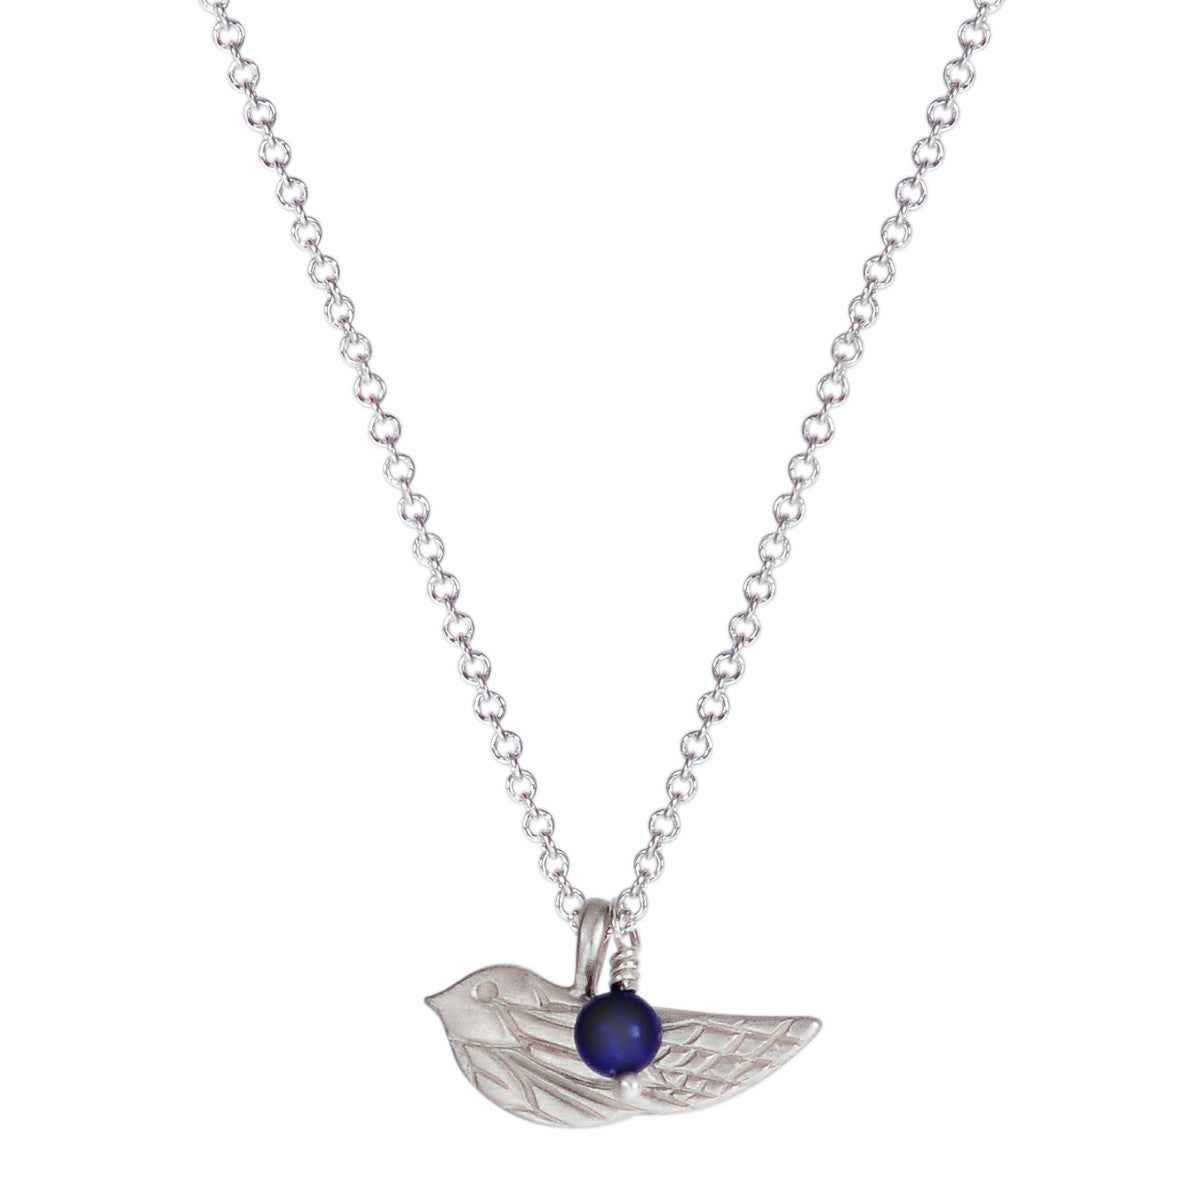 Sterling Silver Engraved Bird Pendant with Lapis Bead